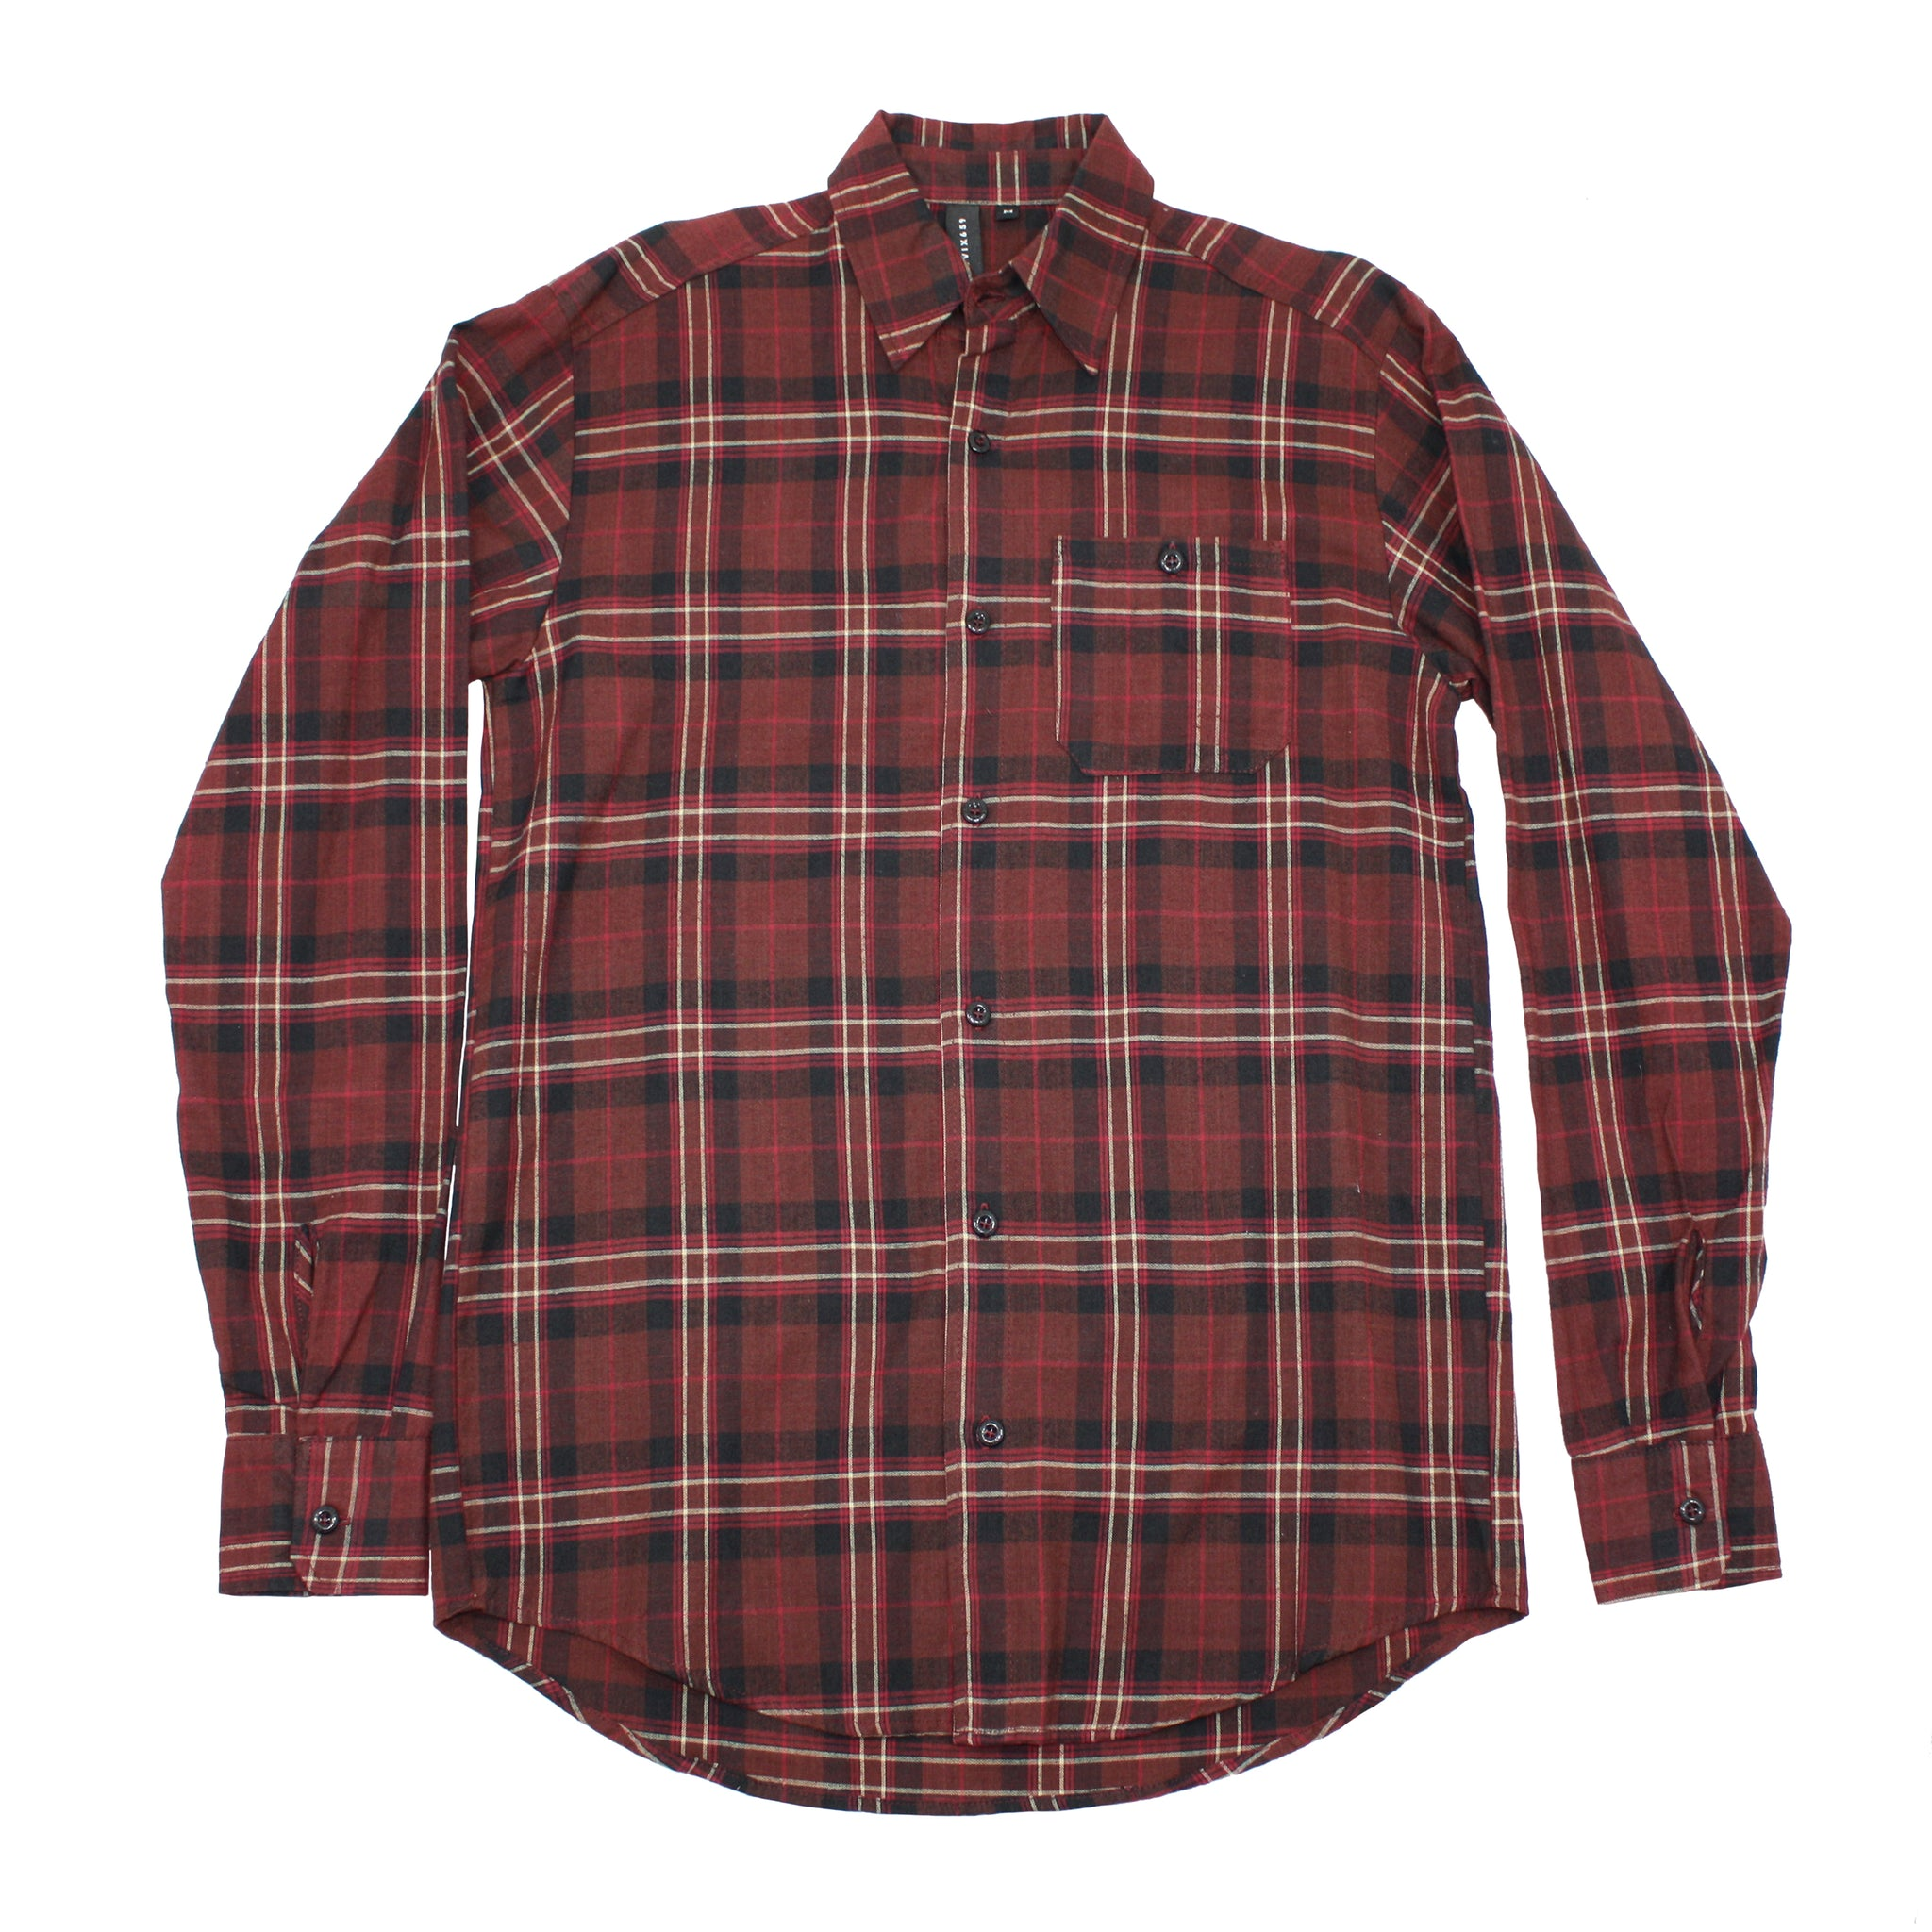 American made marron flannel